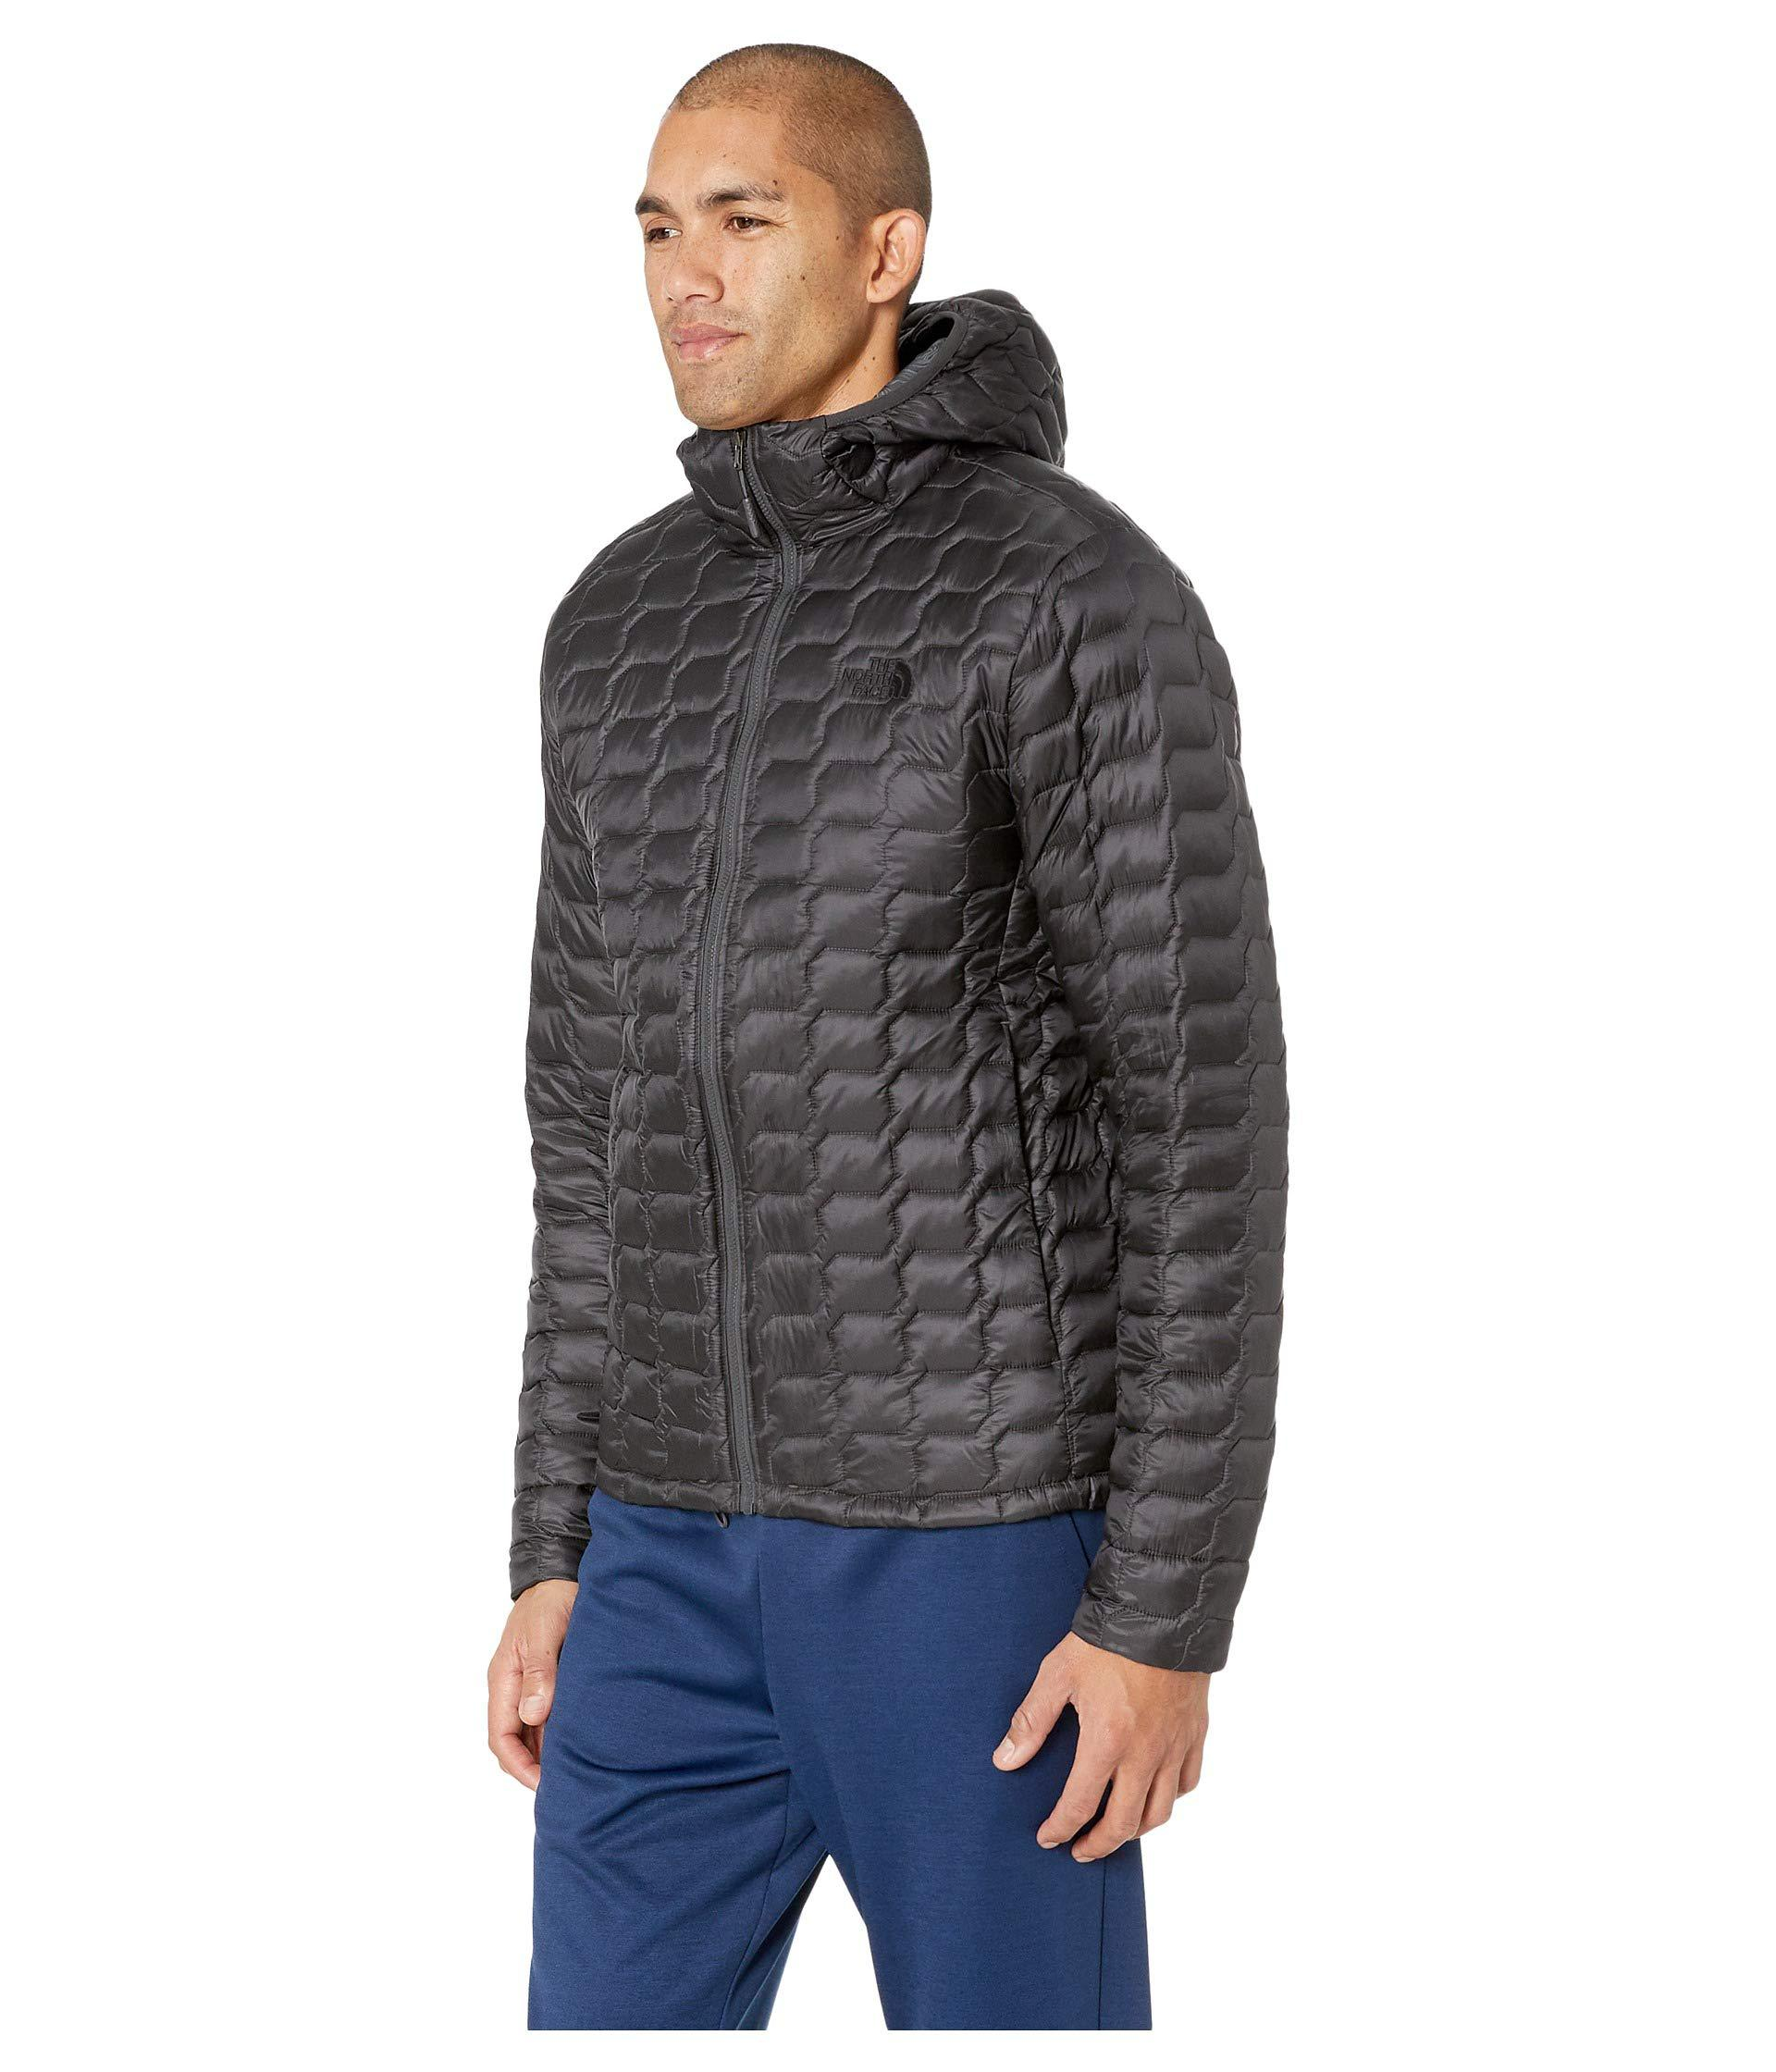 39a5665a8a Lyst - The North Face Thermoball Hoodie (asphalt Grey asphalt Grey) Men s  Coat in Gray for Men